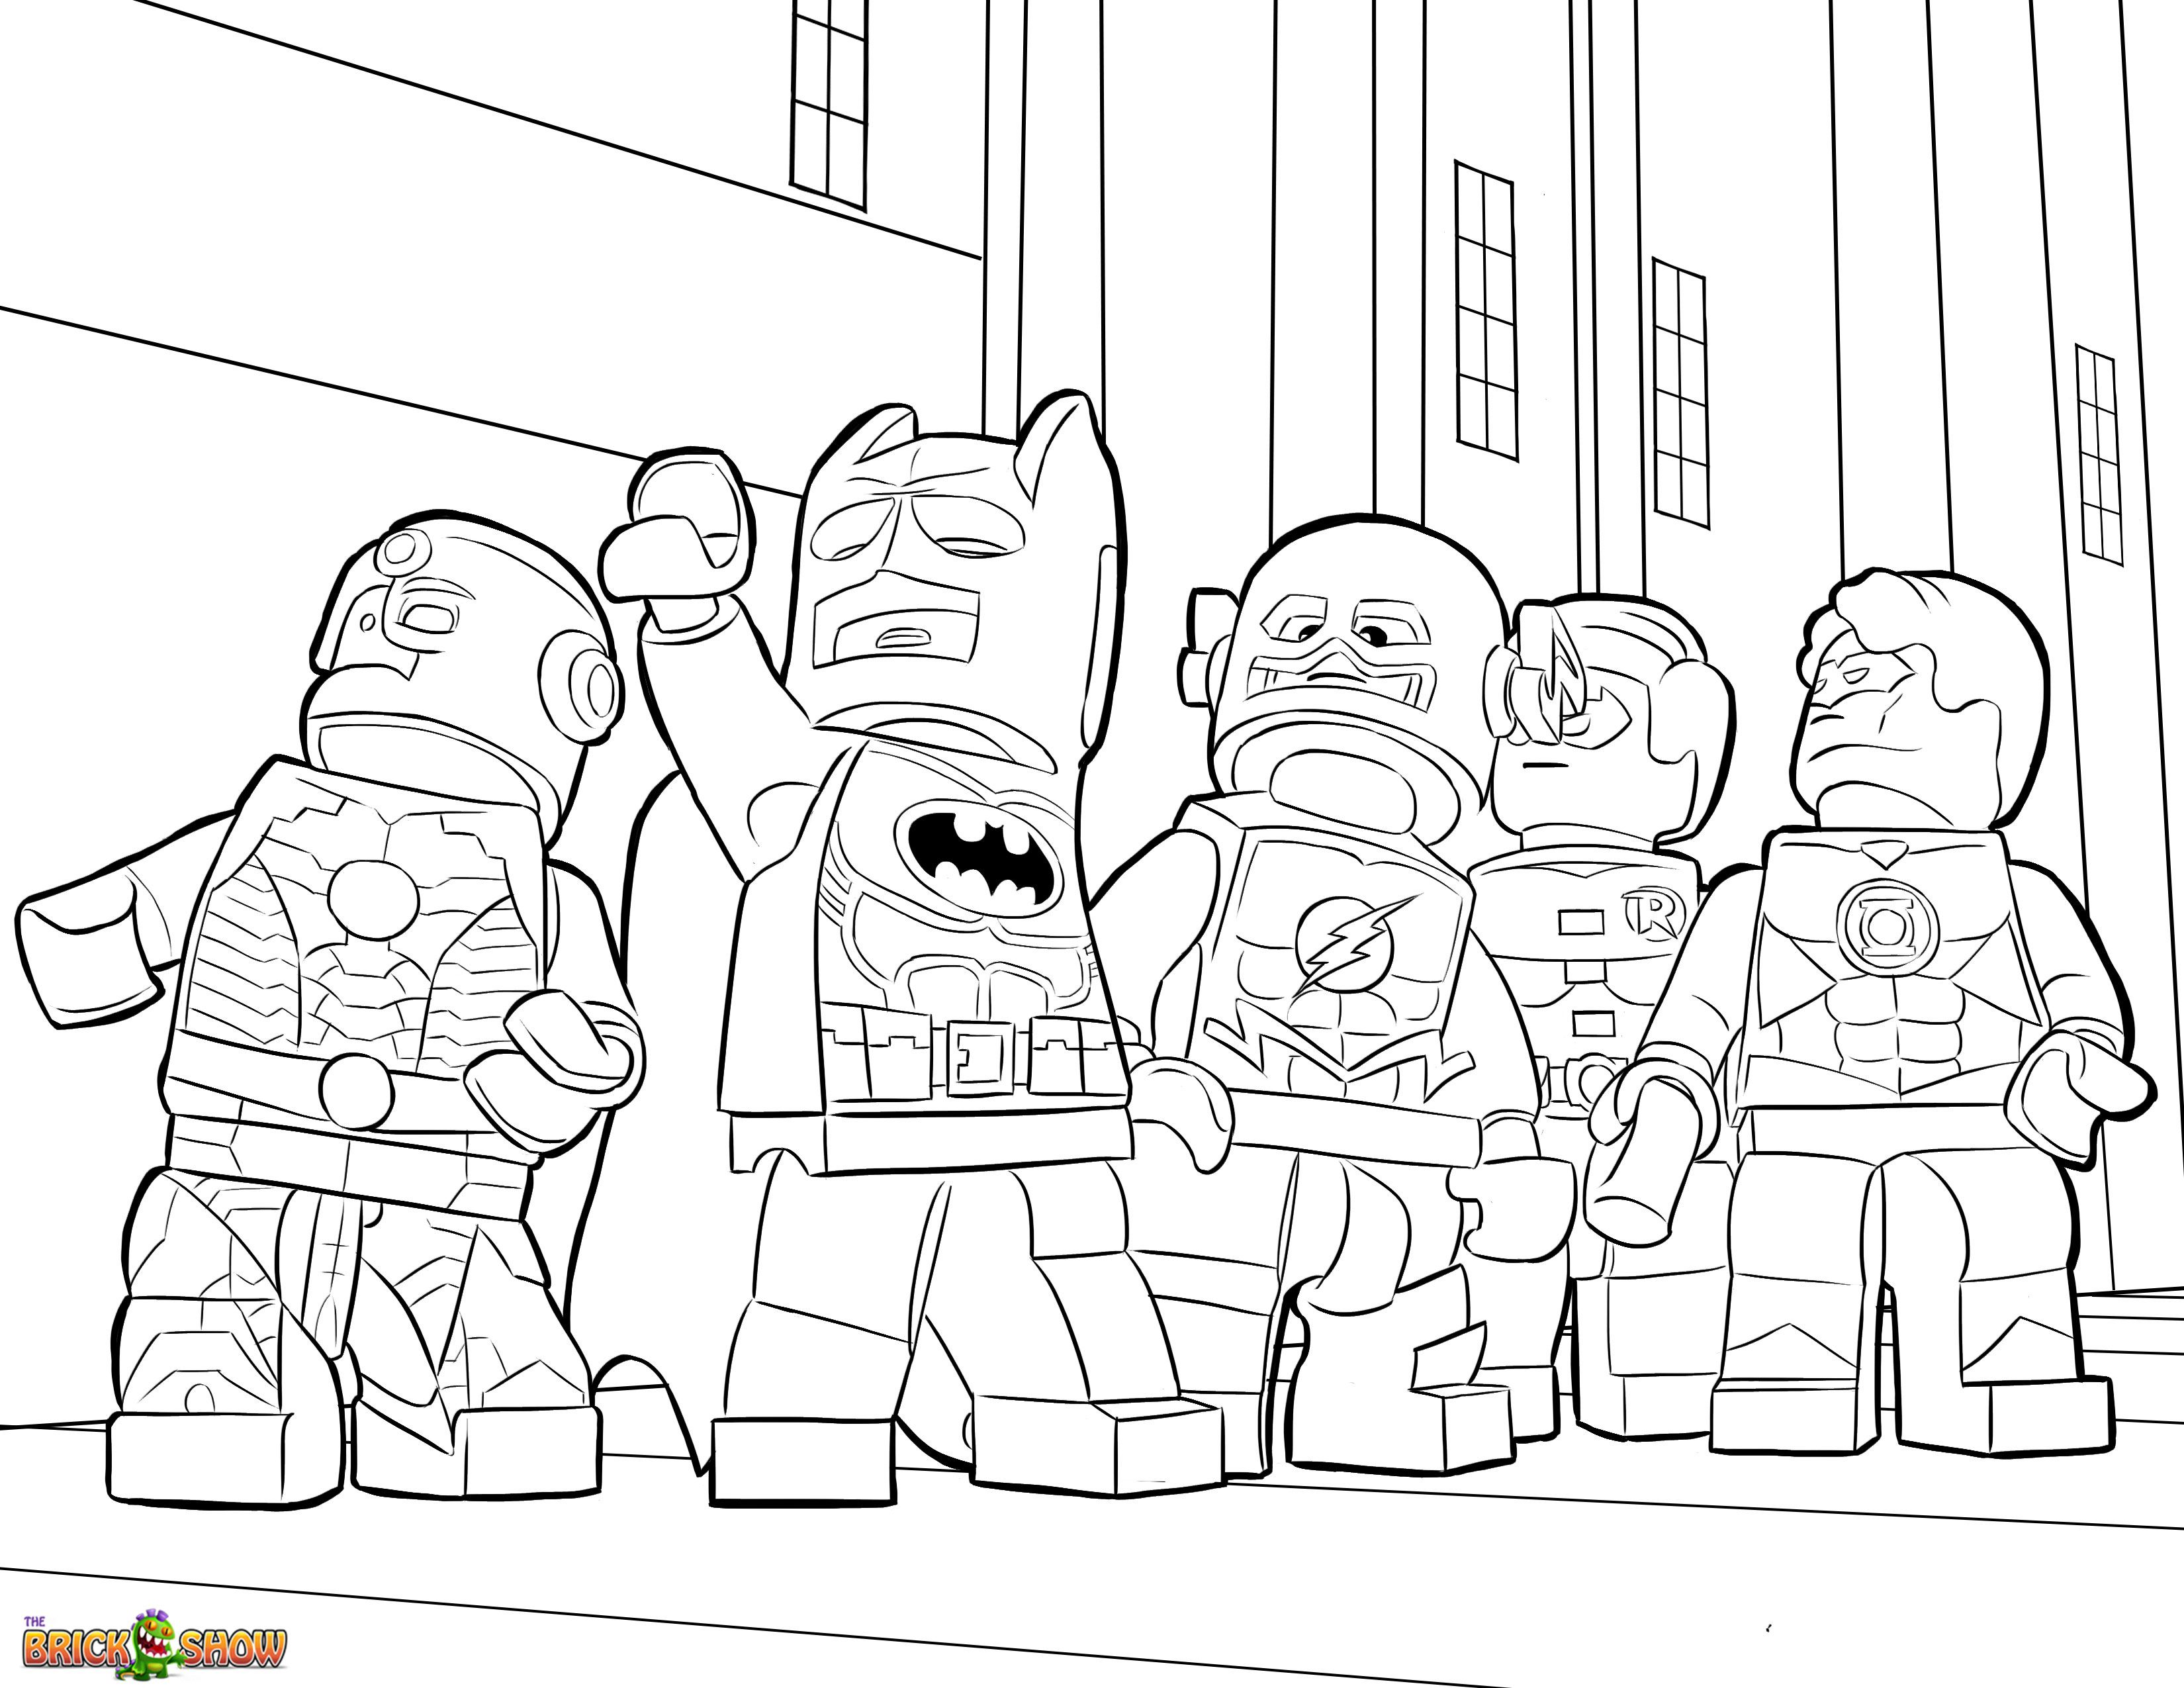 coloring lego avengers lego avengers coloring pages at getcoloringscom free lego coloring avengers